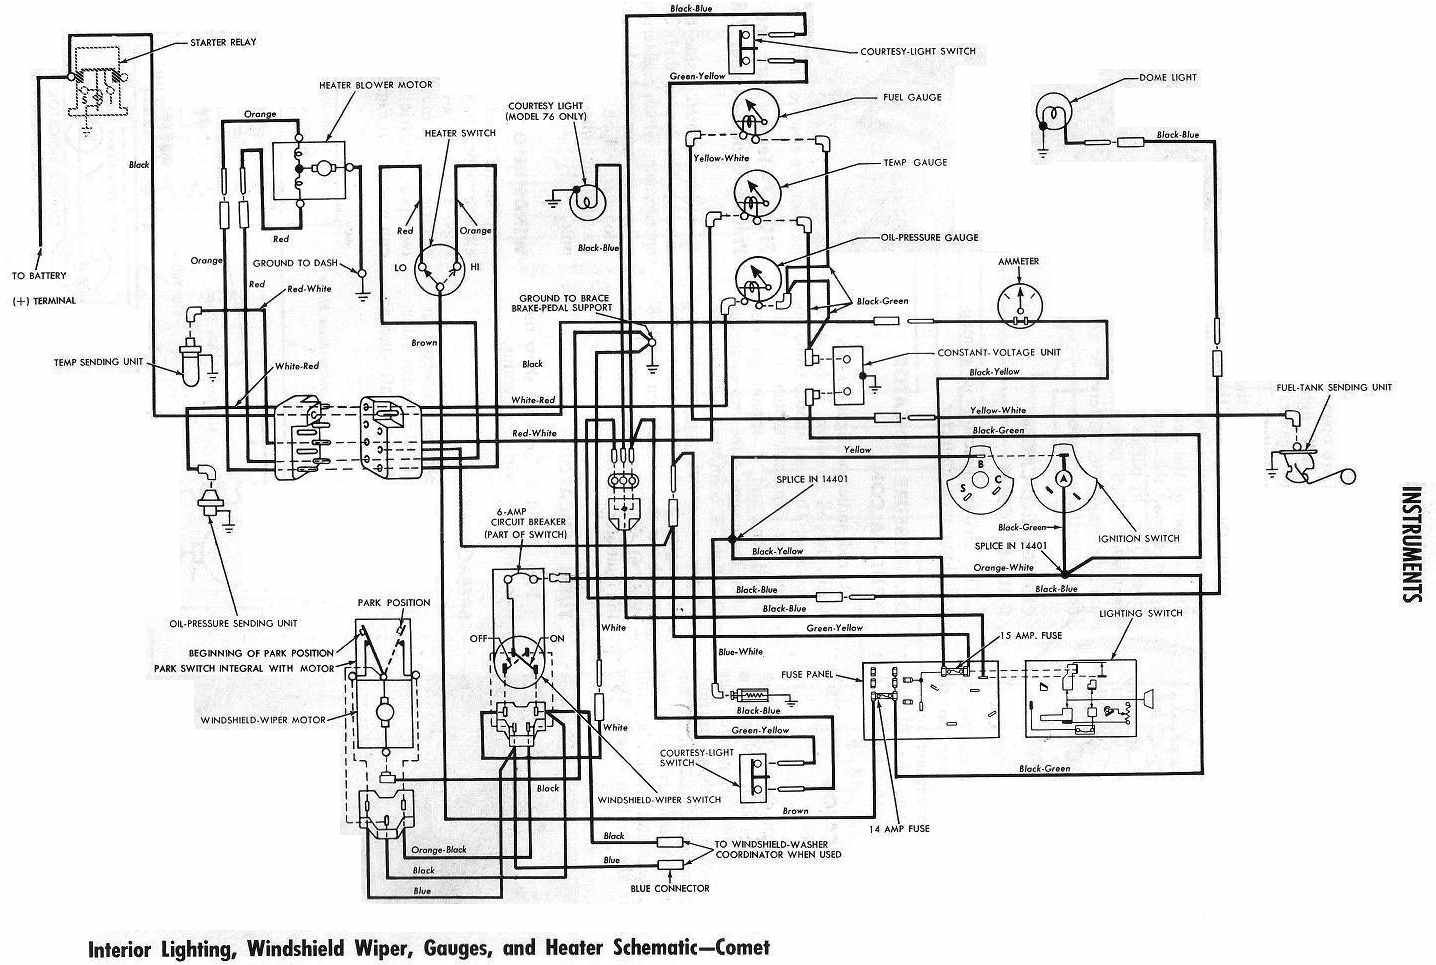 1964 nova wiring diagram heater